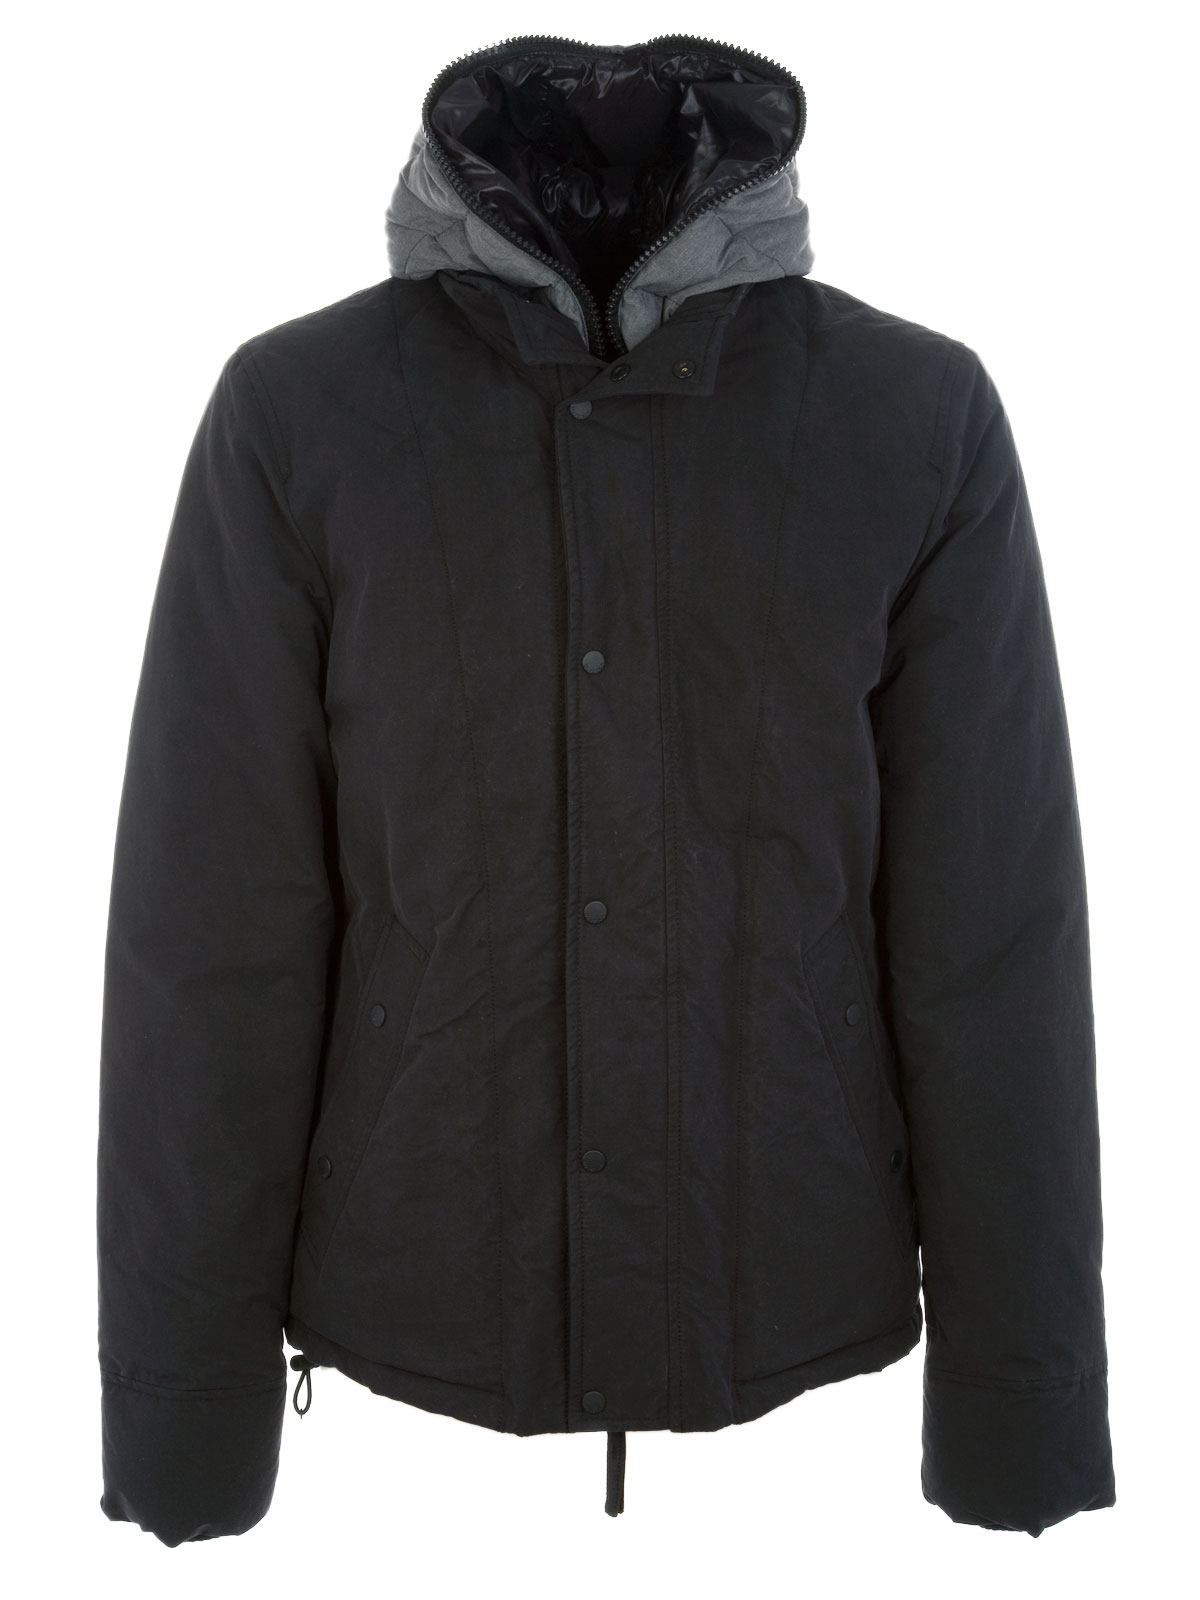 new styles a2fa1 b5c54 Details about Duvetica Men's Clothing Jackets & Coats - 152U.5150.00 | Blue  | Fall Winter